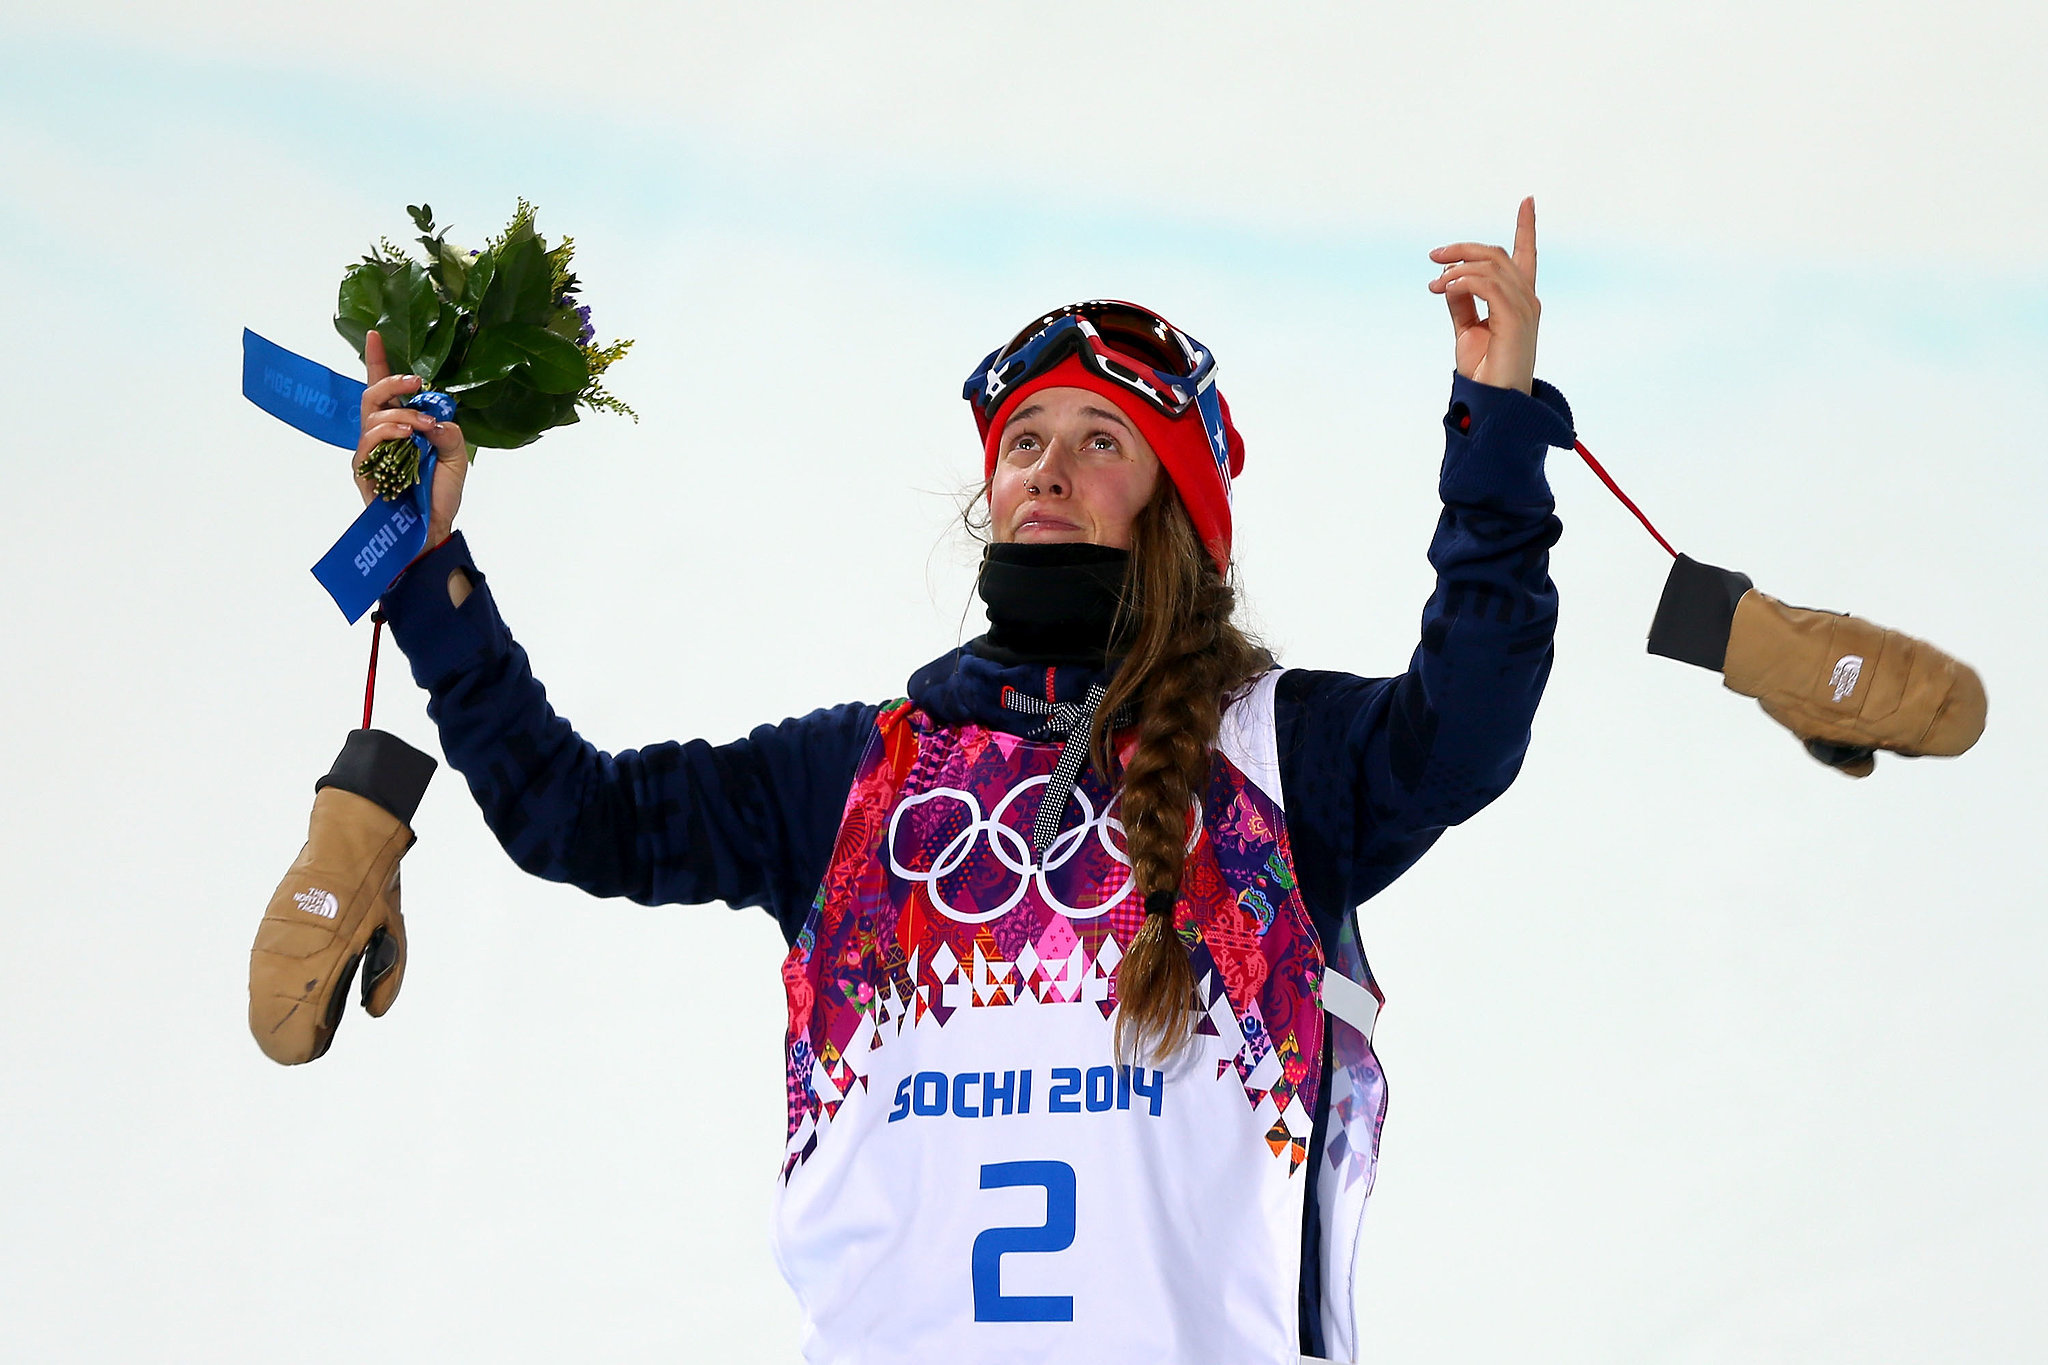 Maddie Bowman got emotional as she paid tribute to the late Canadian skier Sarah Burke at the podium.